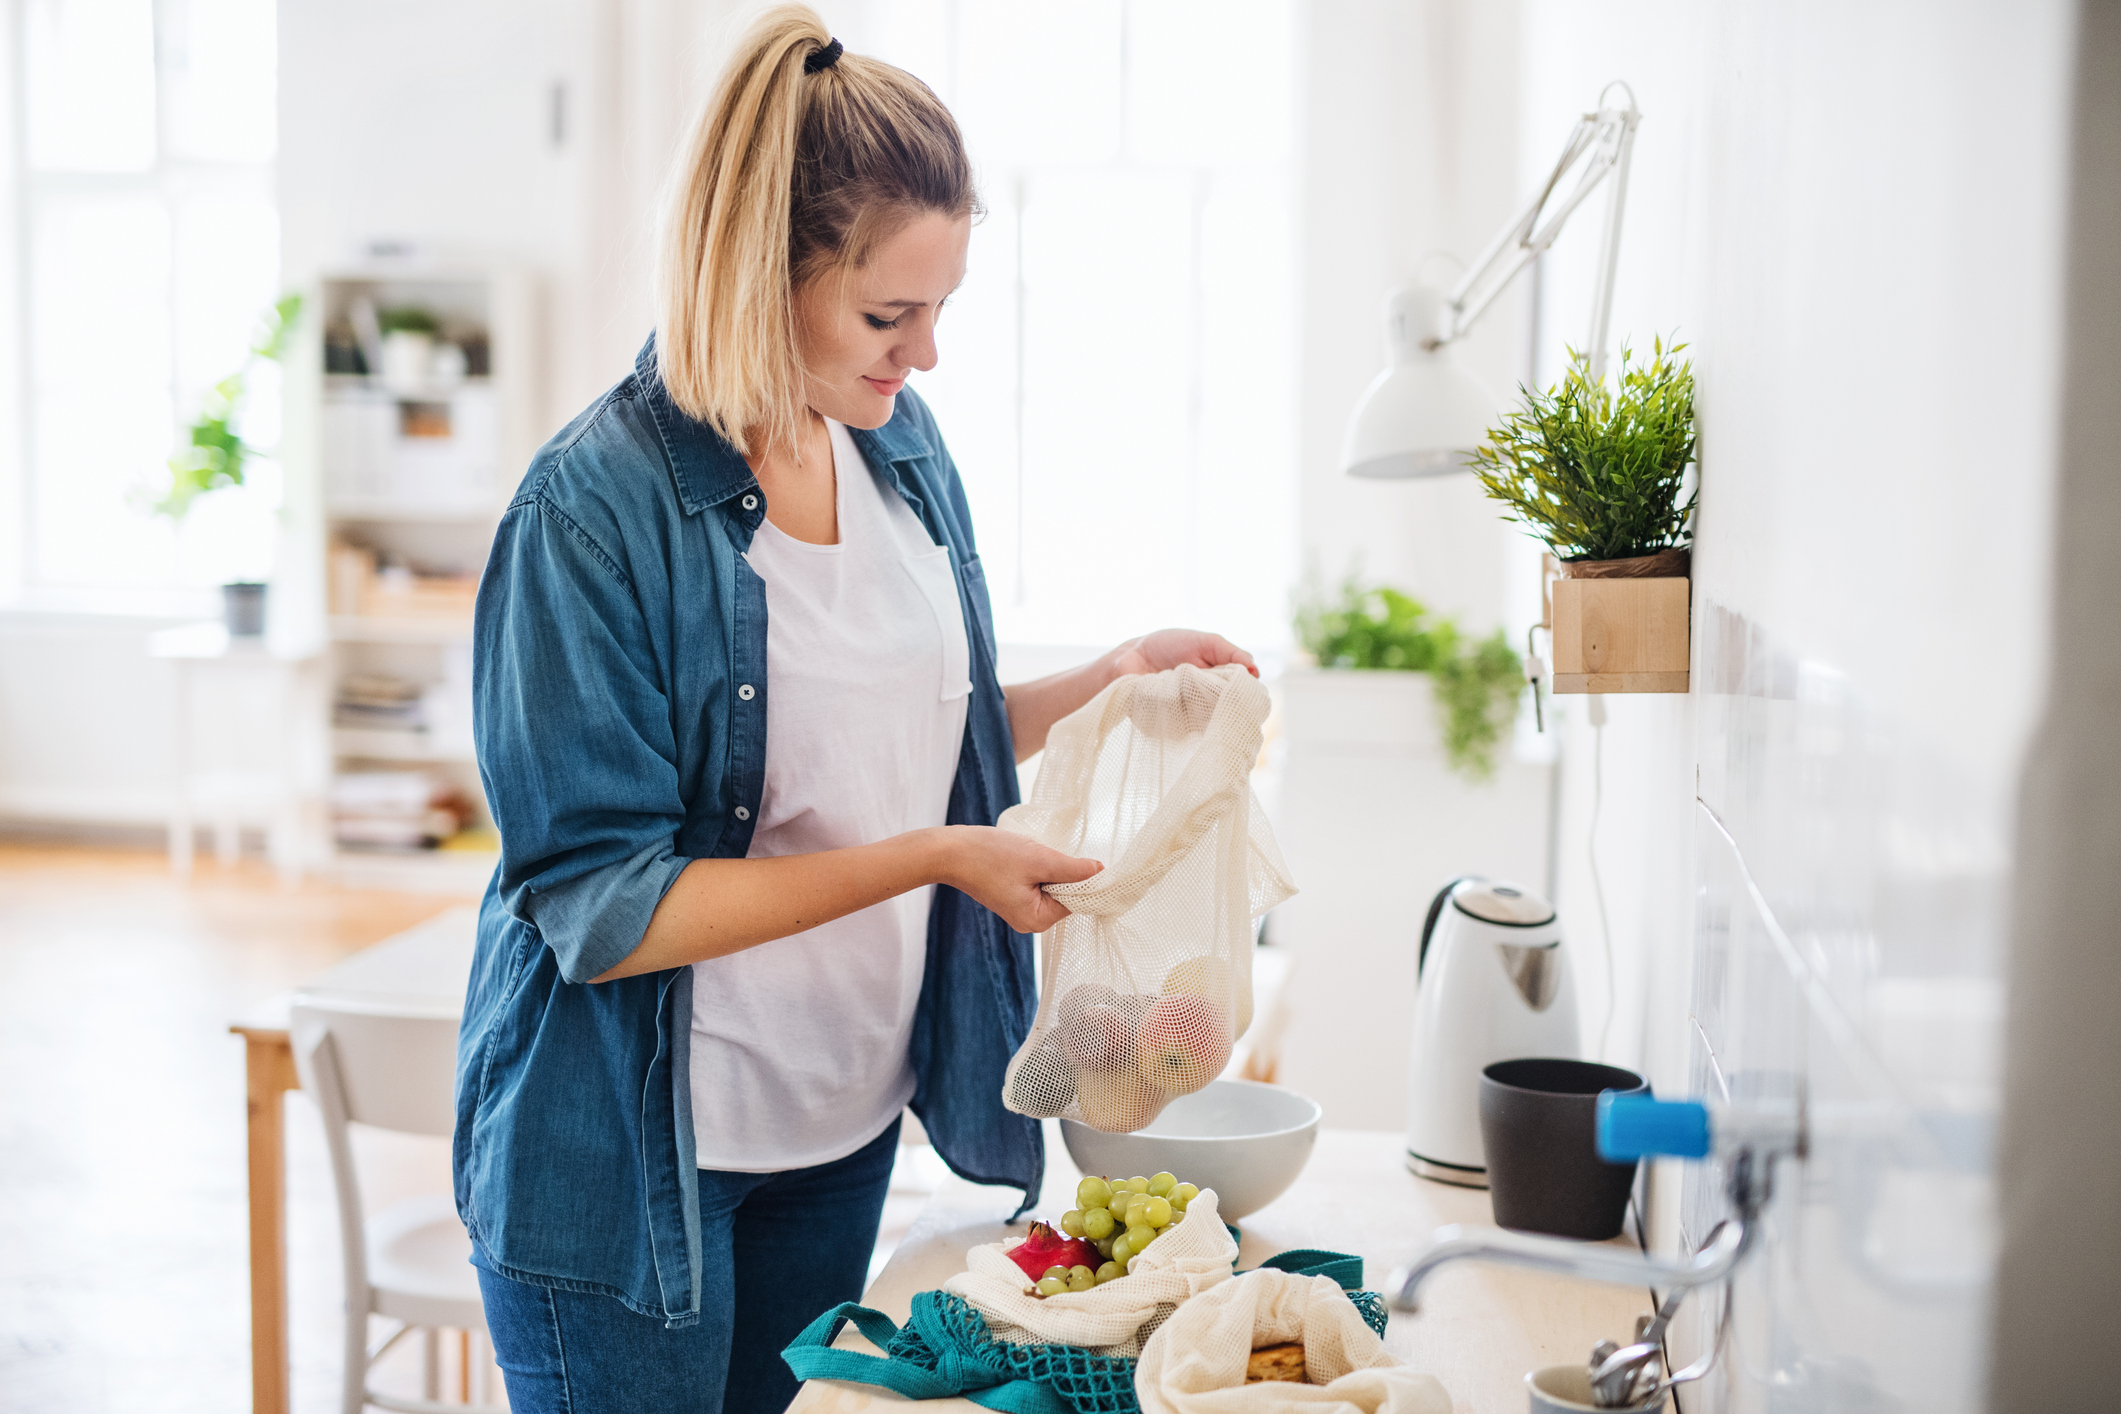 Small Changes to Make Your Home More Eco-Friendly